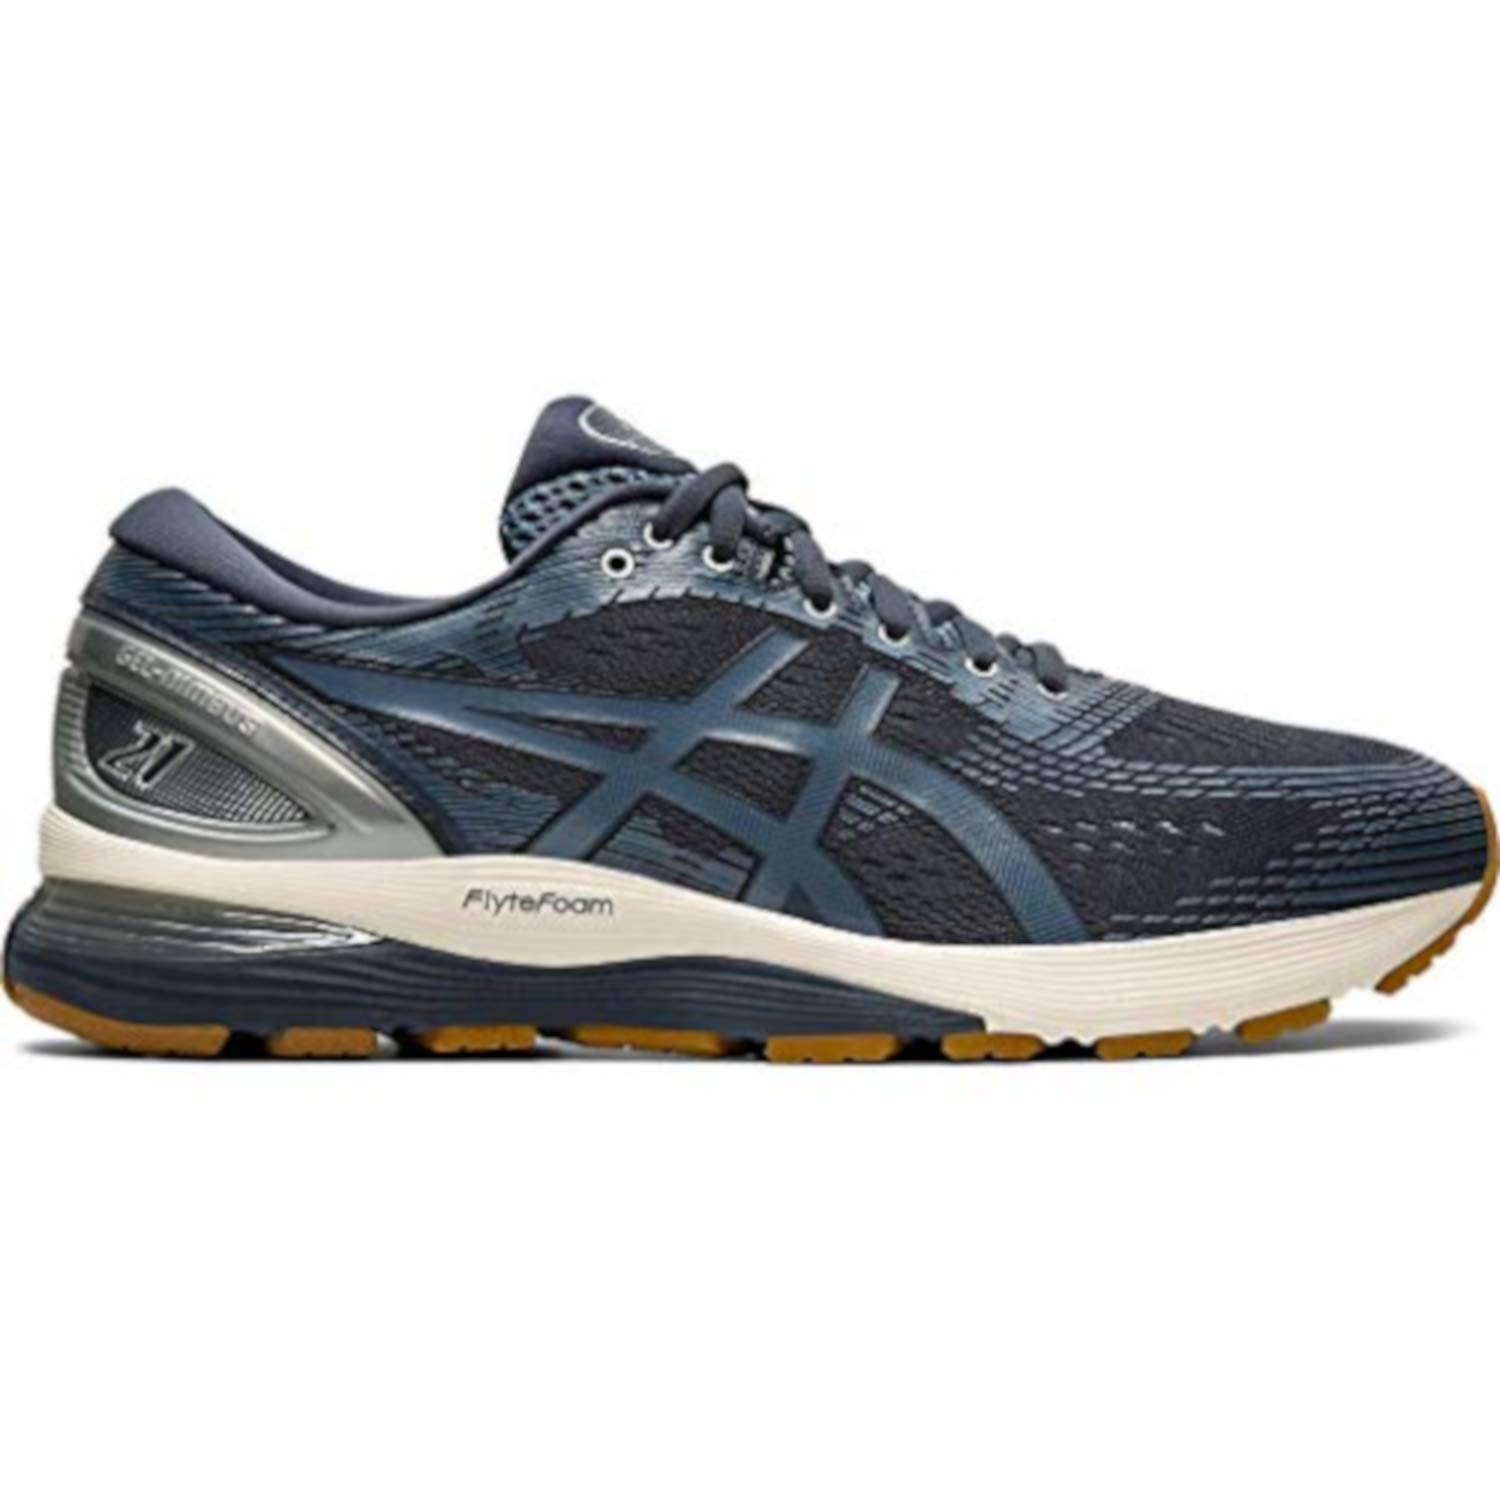 premium selection 8c989 50f5a ASICS Gel-Nimbus 21 Men's Running Shoe: Amazon.co.uk: Shoes ...